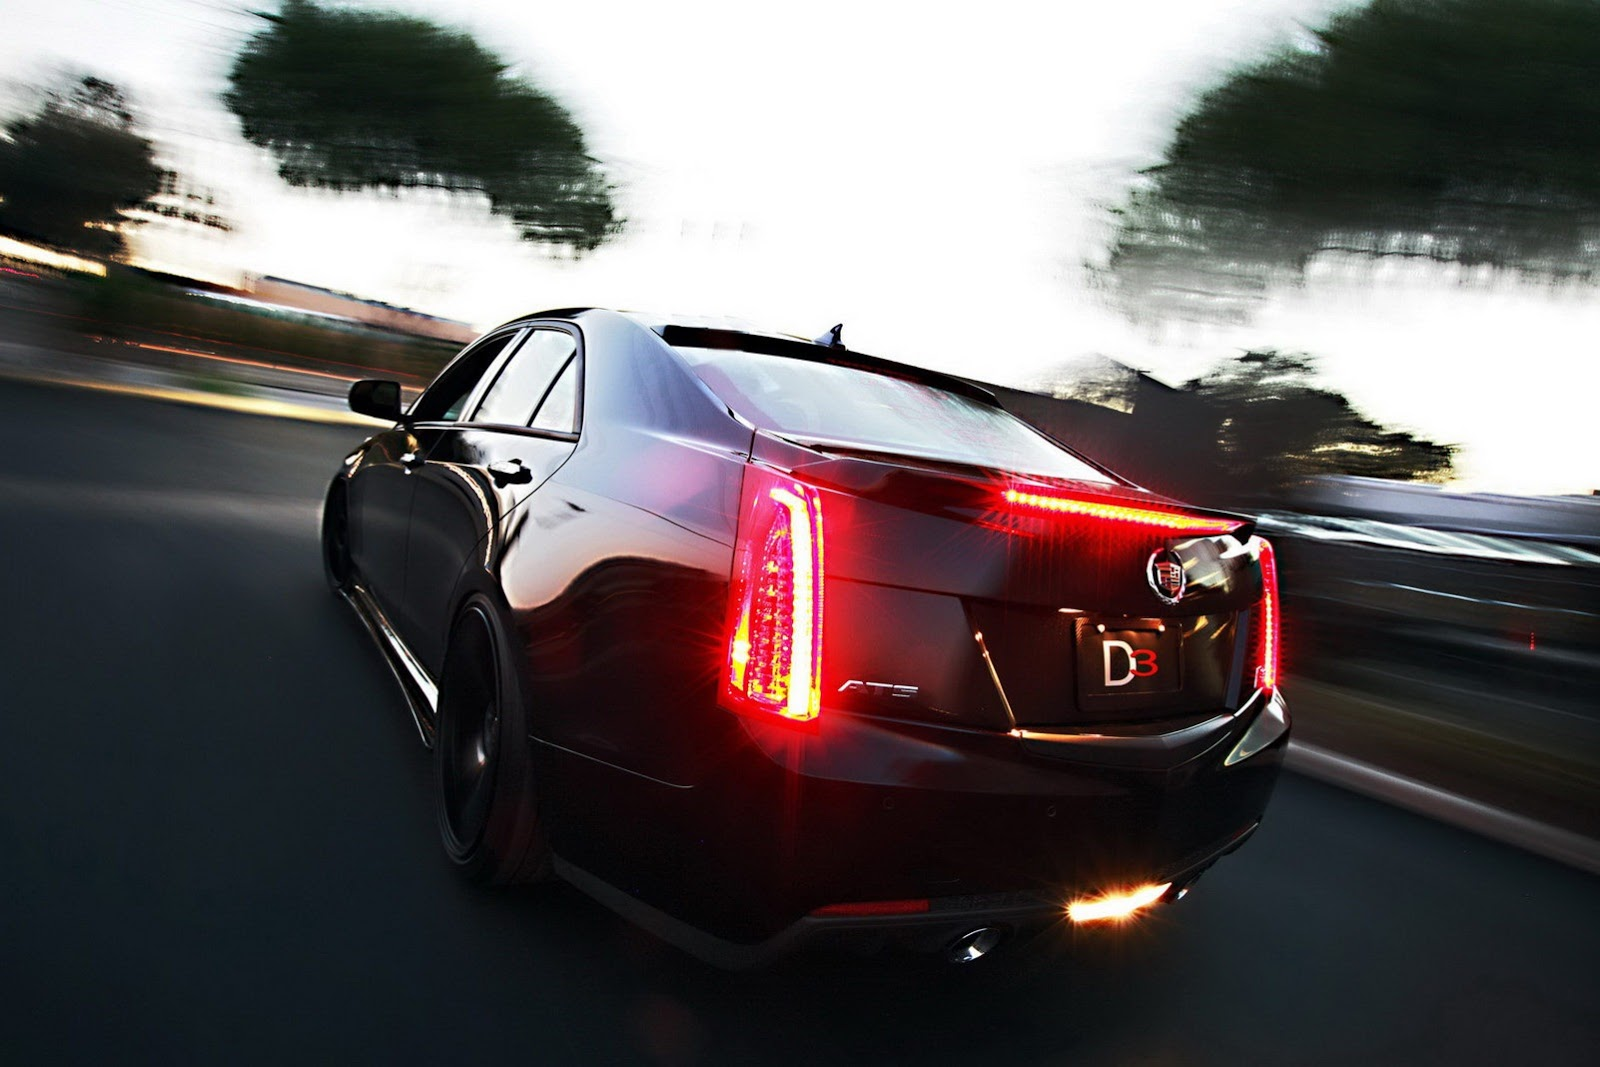 2013 Cadillac Ats 2 0 L Turbo >> 2013 Cadillac Ats Engines 270 Hp 2 0l Turbo 2 5l And 3 6l V6